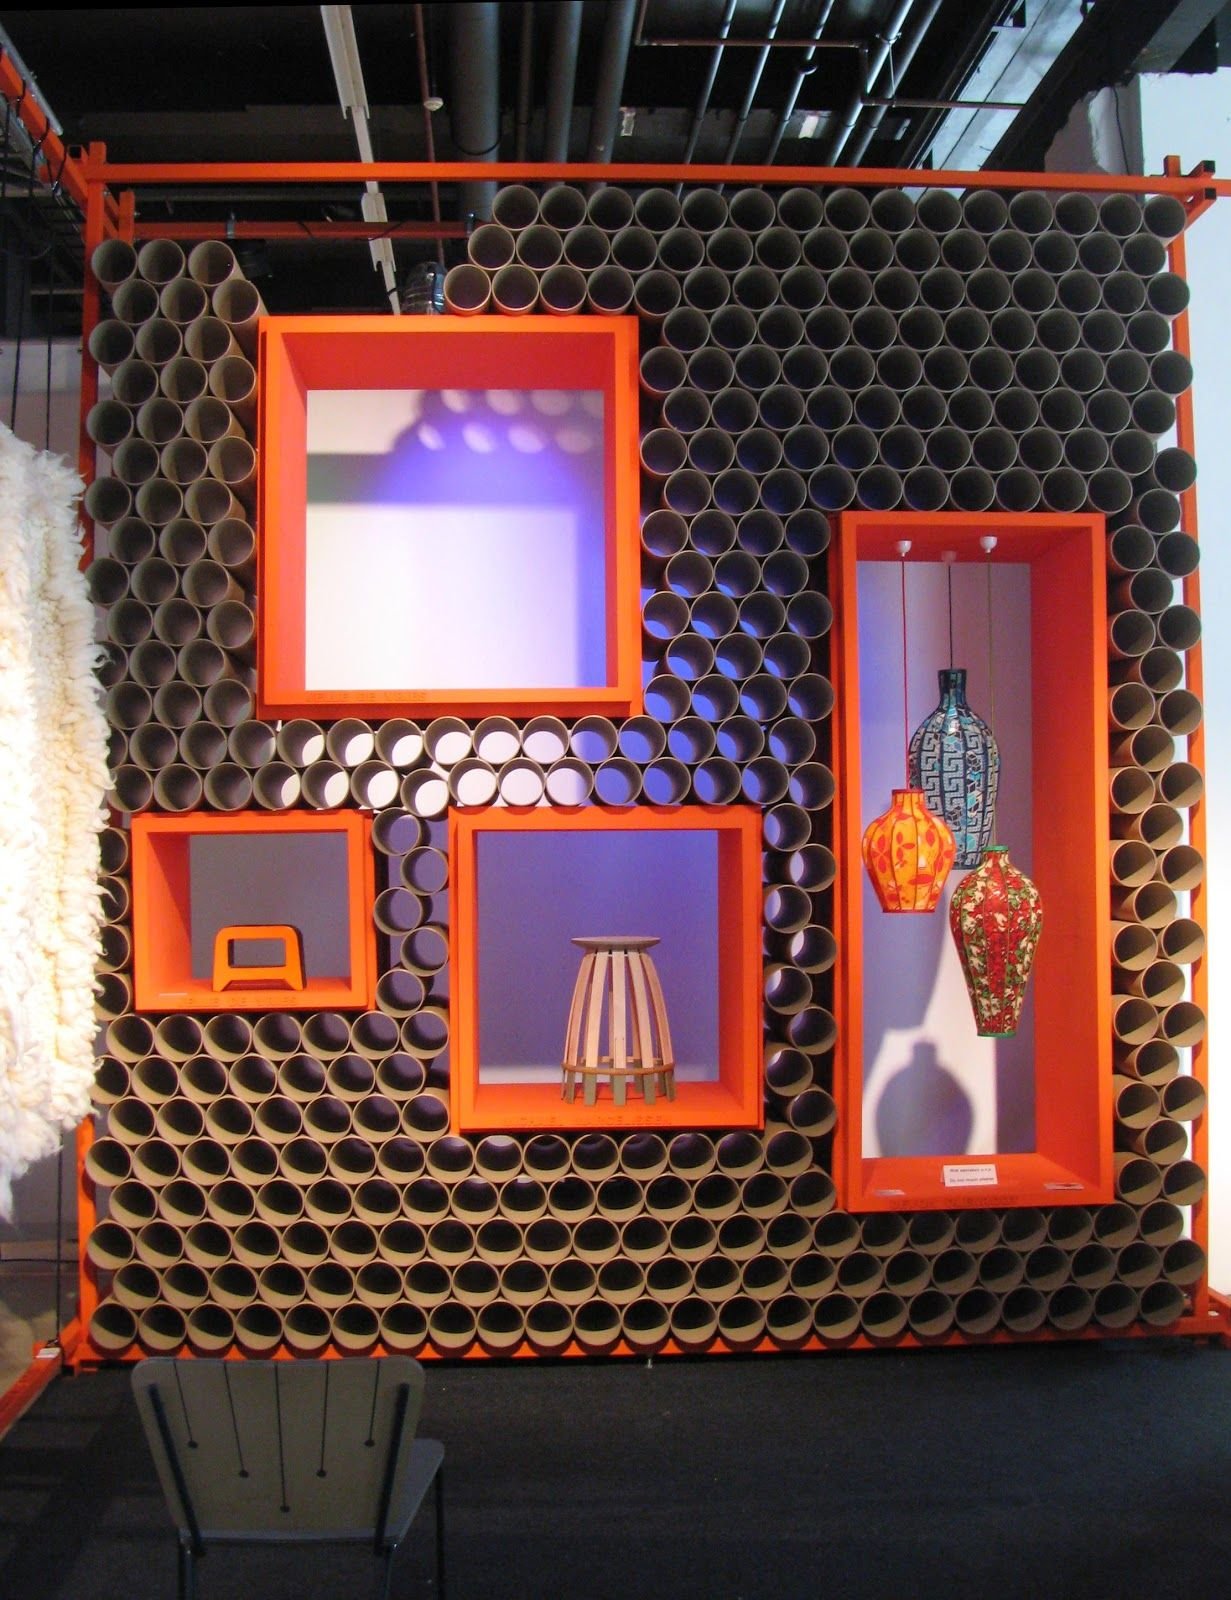 Window cover up ideas  ddw eindhoven avk st joost what a great idea for popup fixt